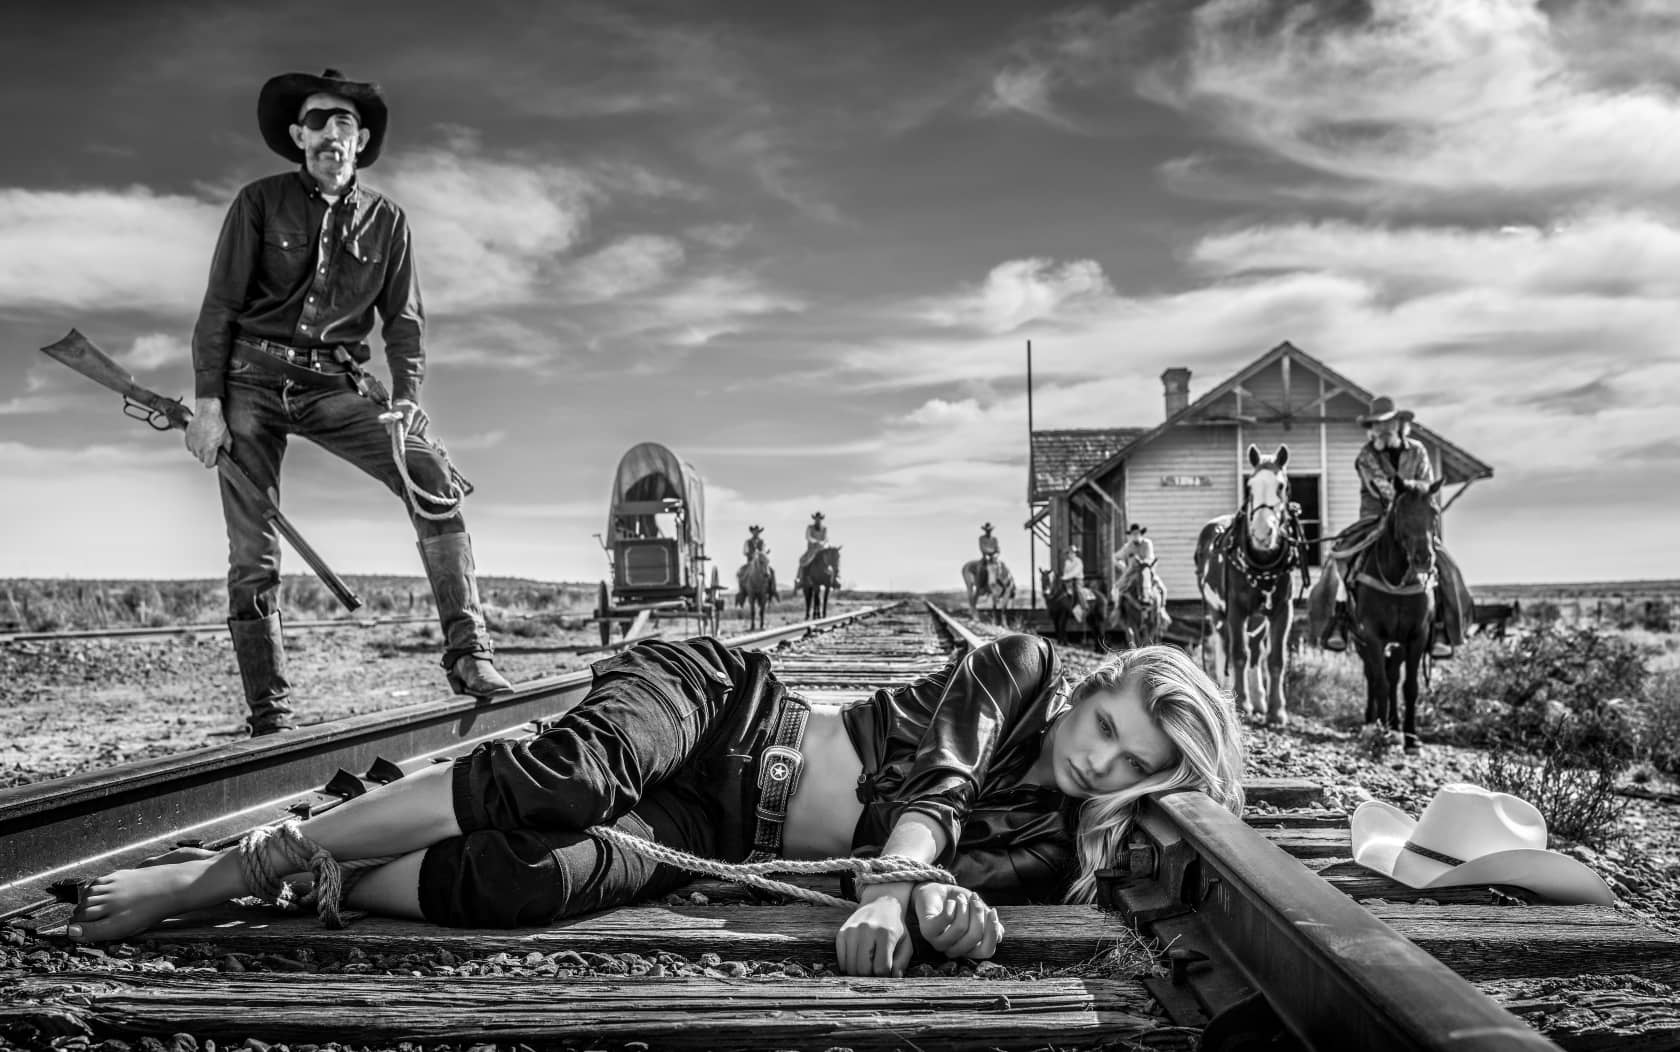 David Yarrow 3:10 to Yuma Archival Pigment Print